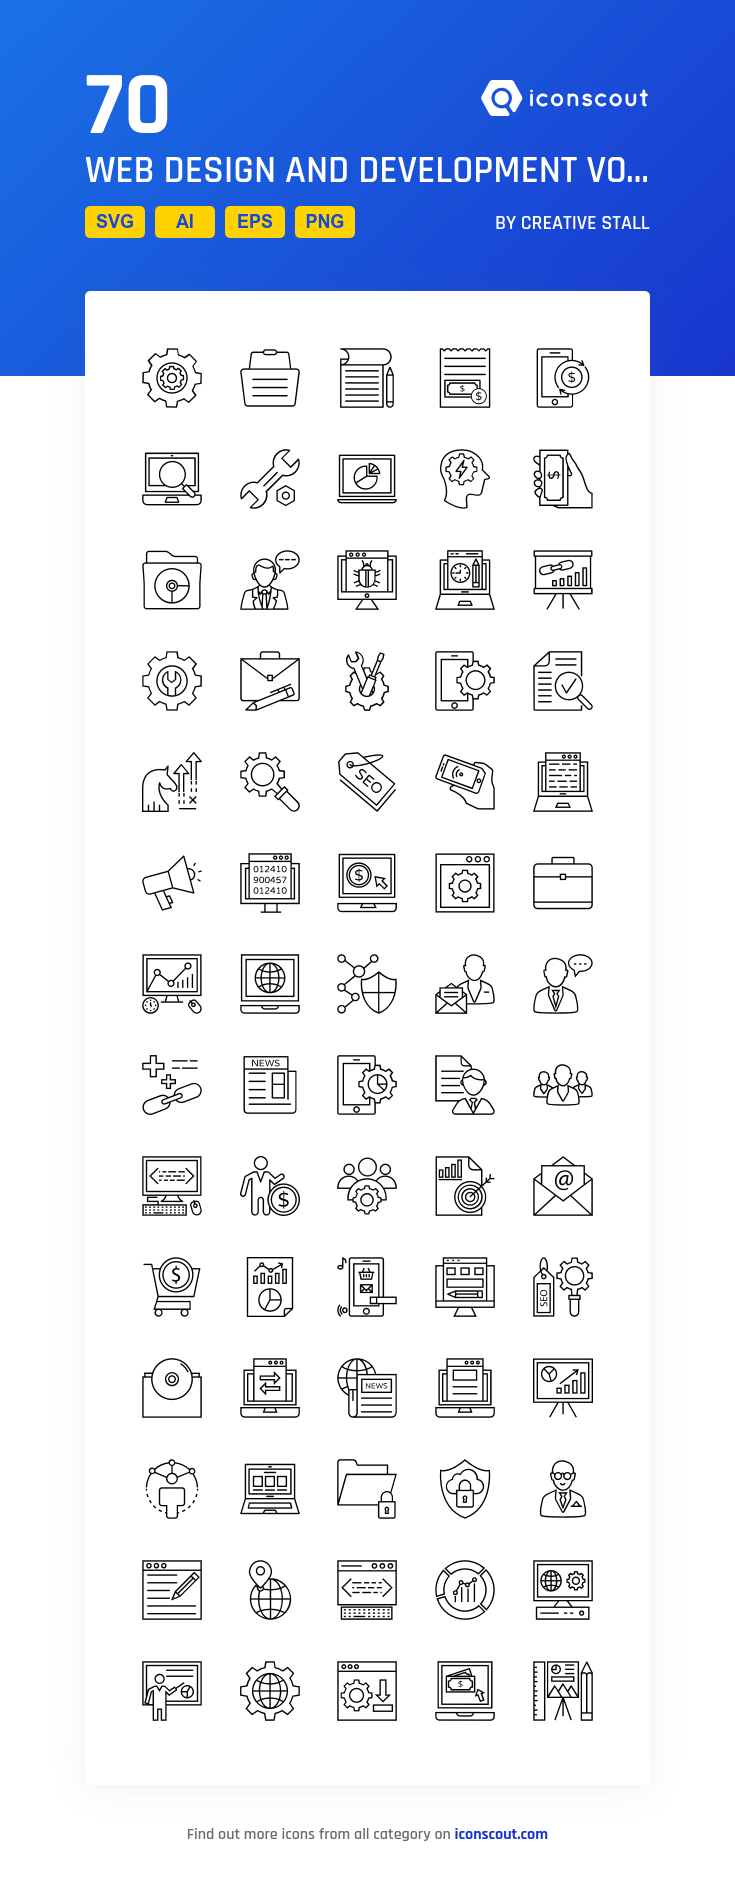 Download Web Design And Development Vol 4 Icon Pack Available In Svg Png Eps Ai Icon Fonts Marketing Icon Web Development Design Icon